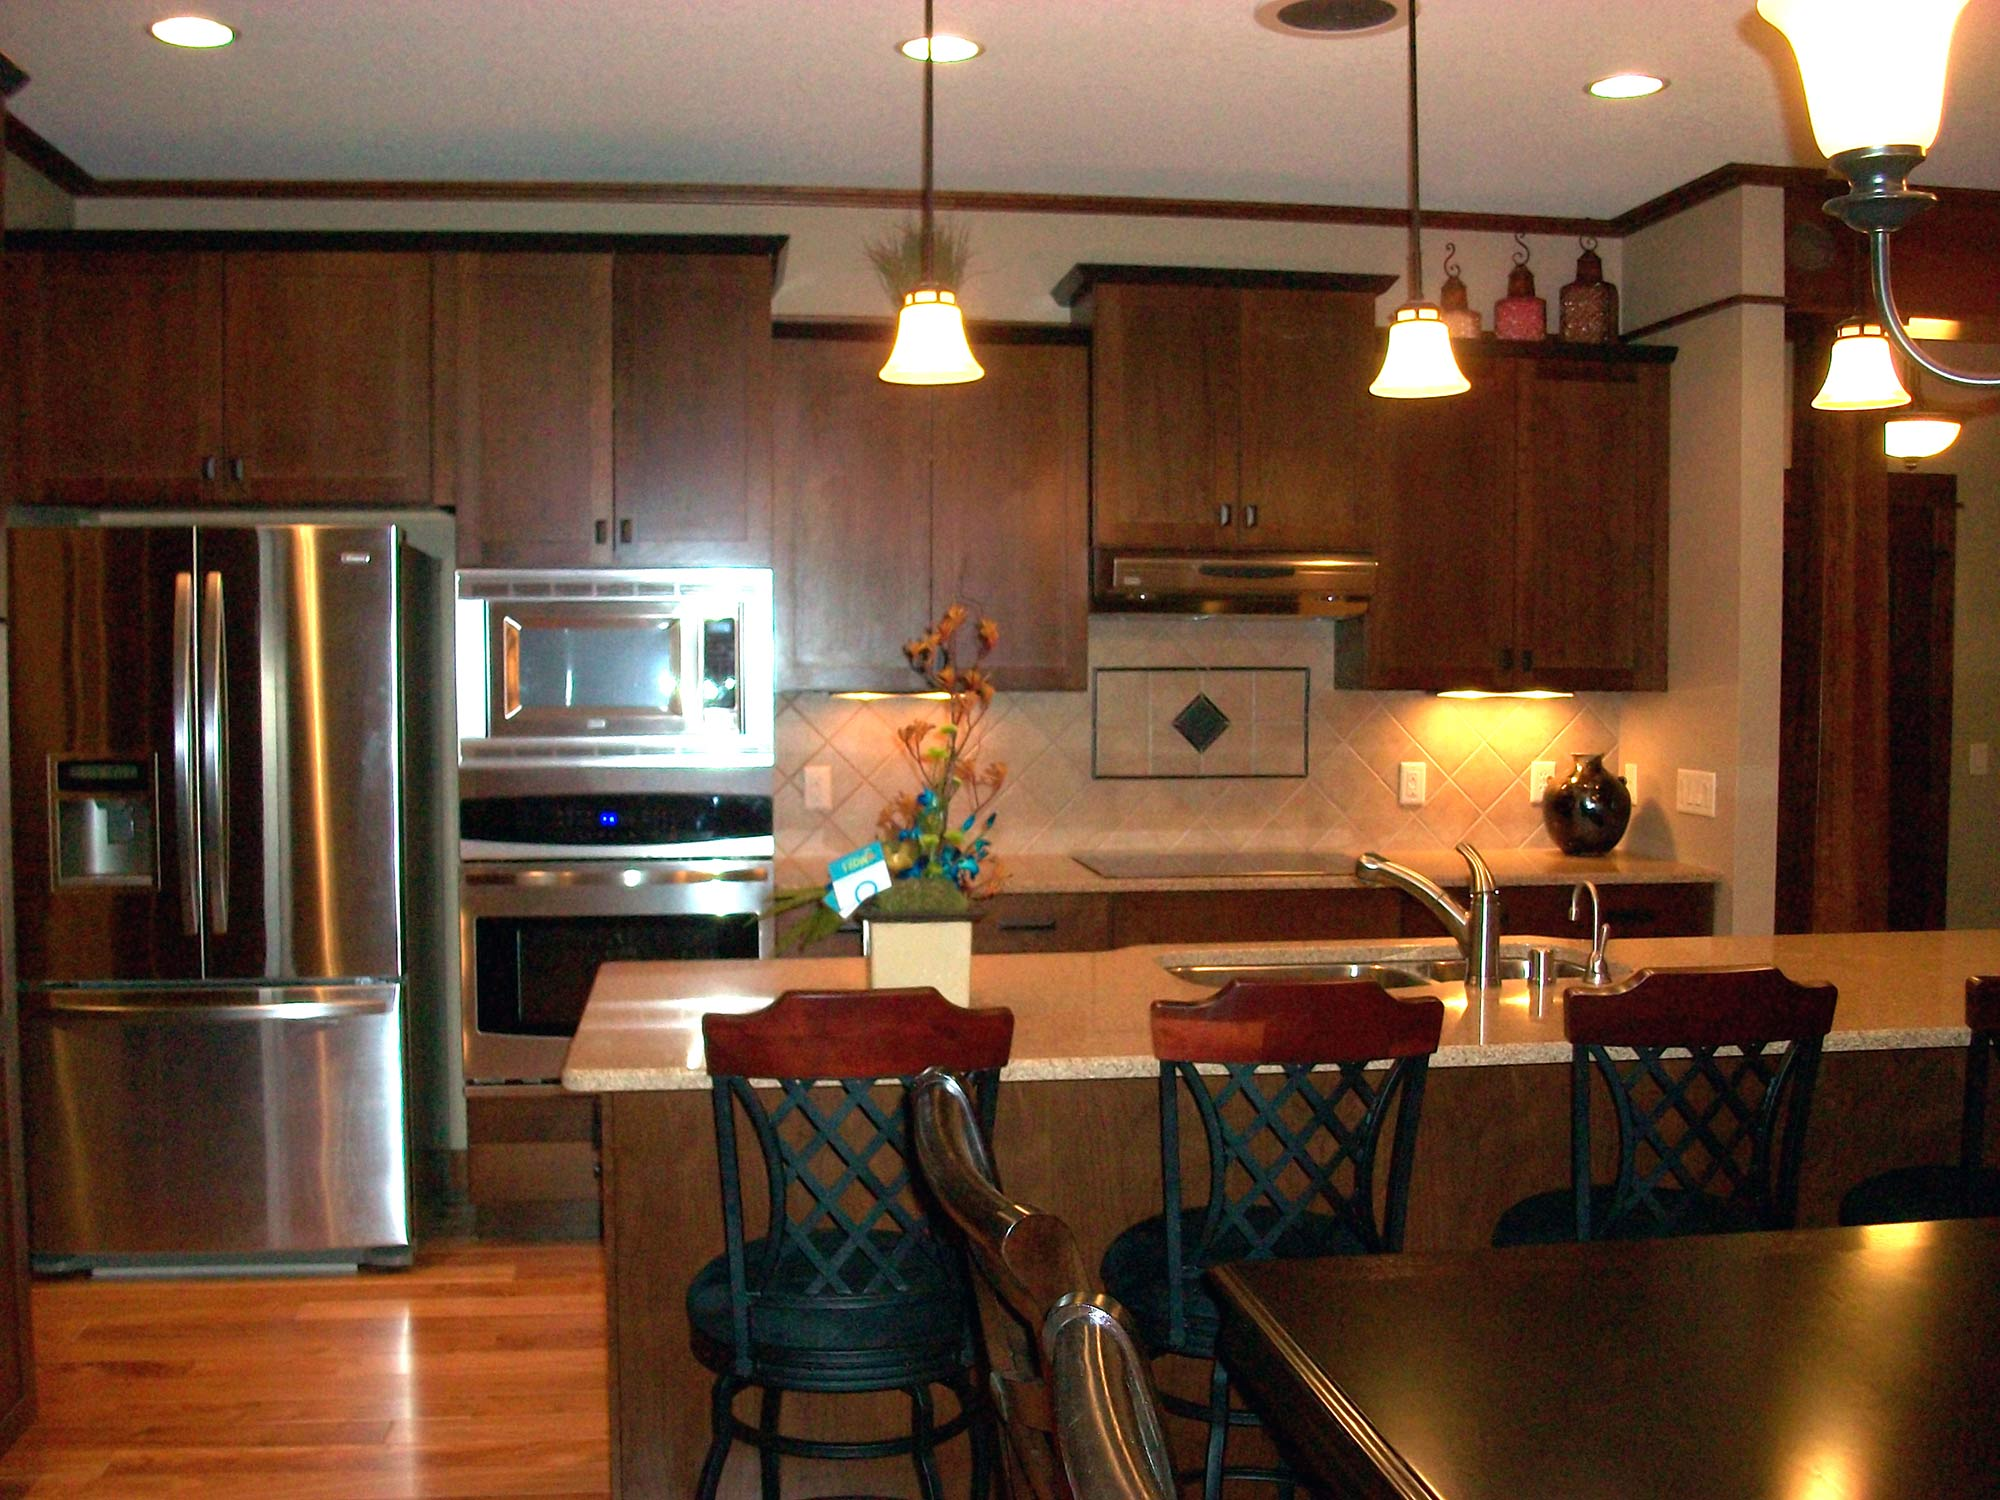 Benjamin Parade Home staging